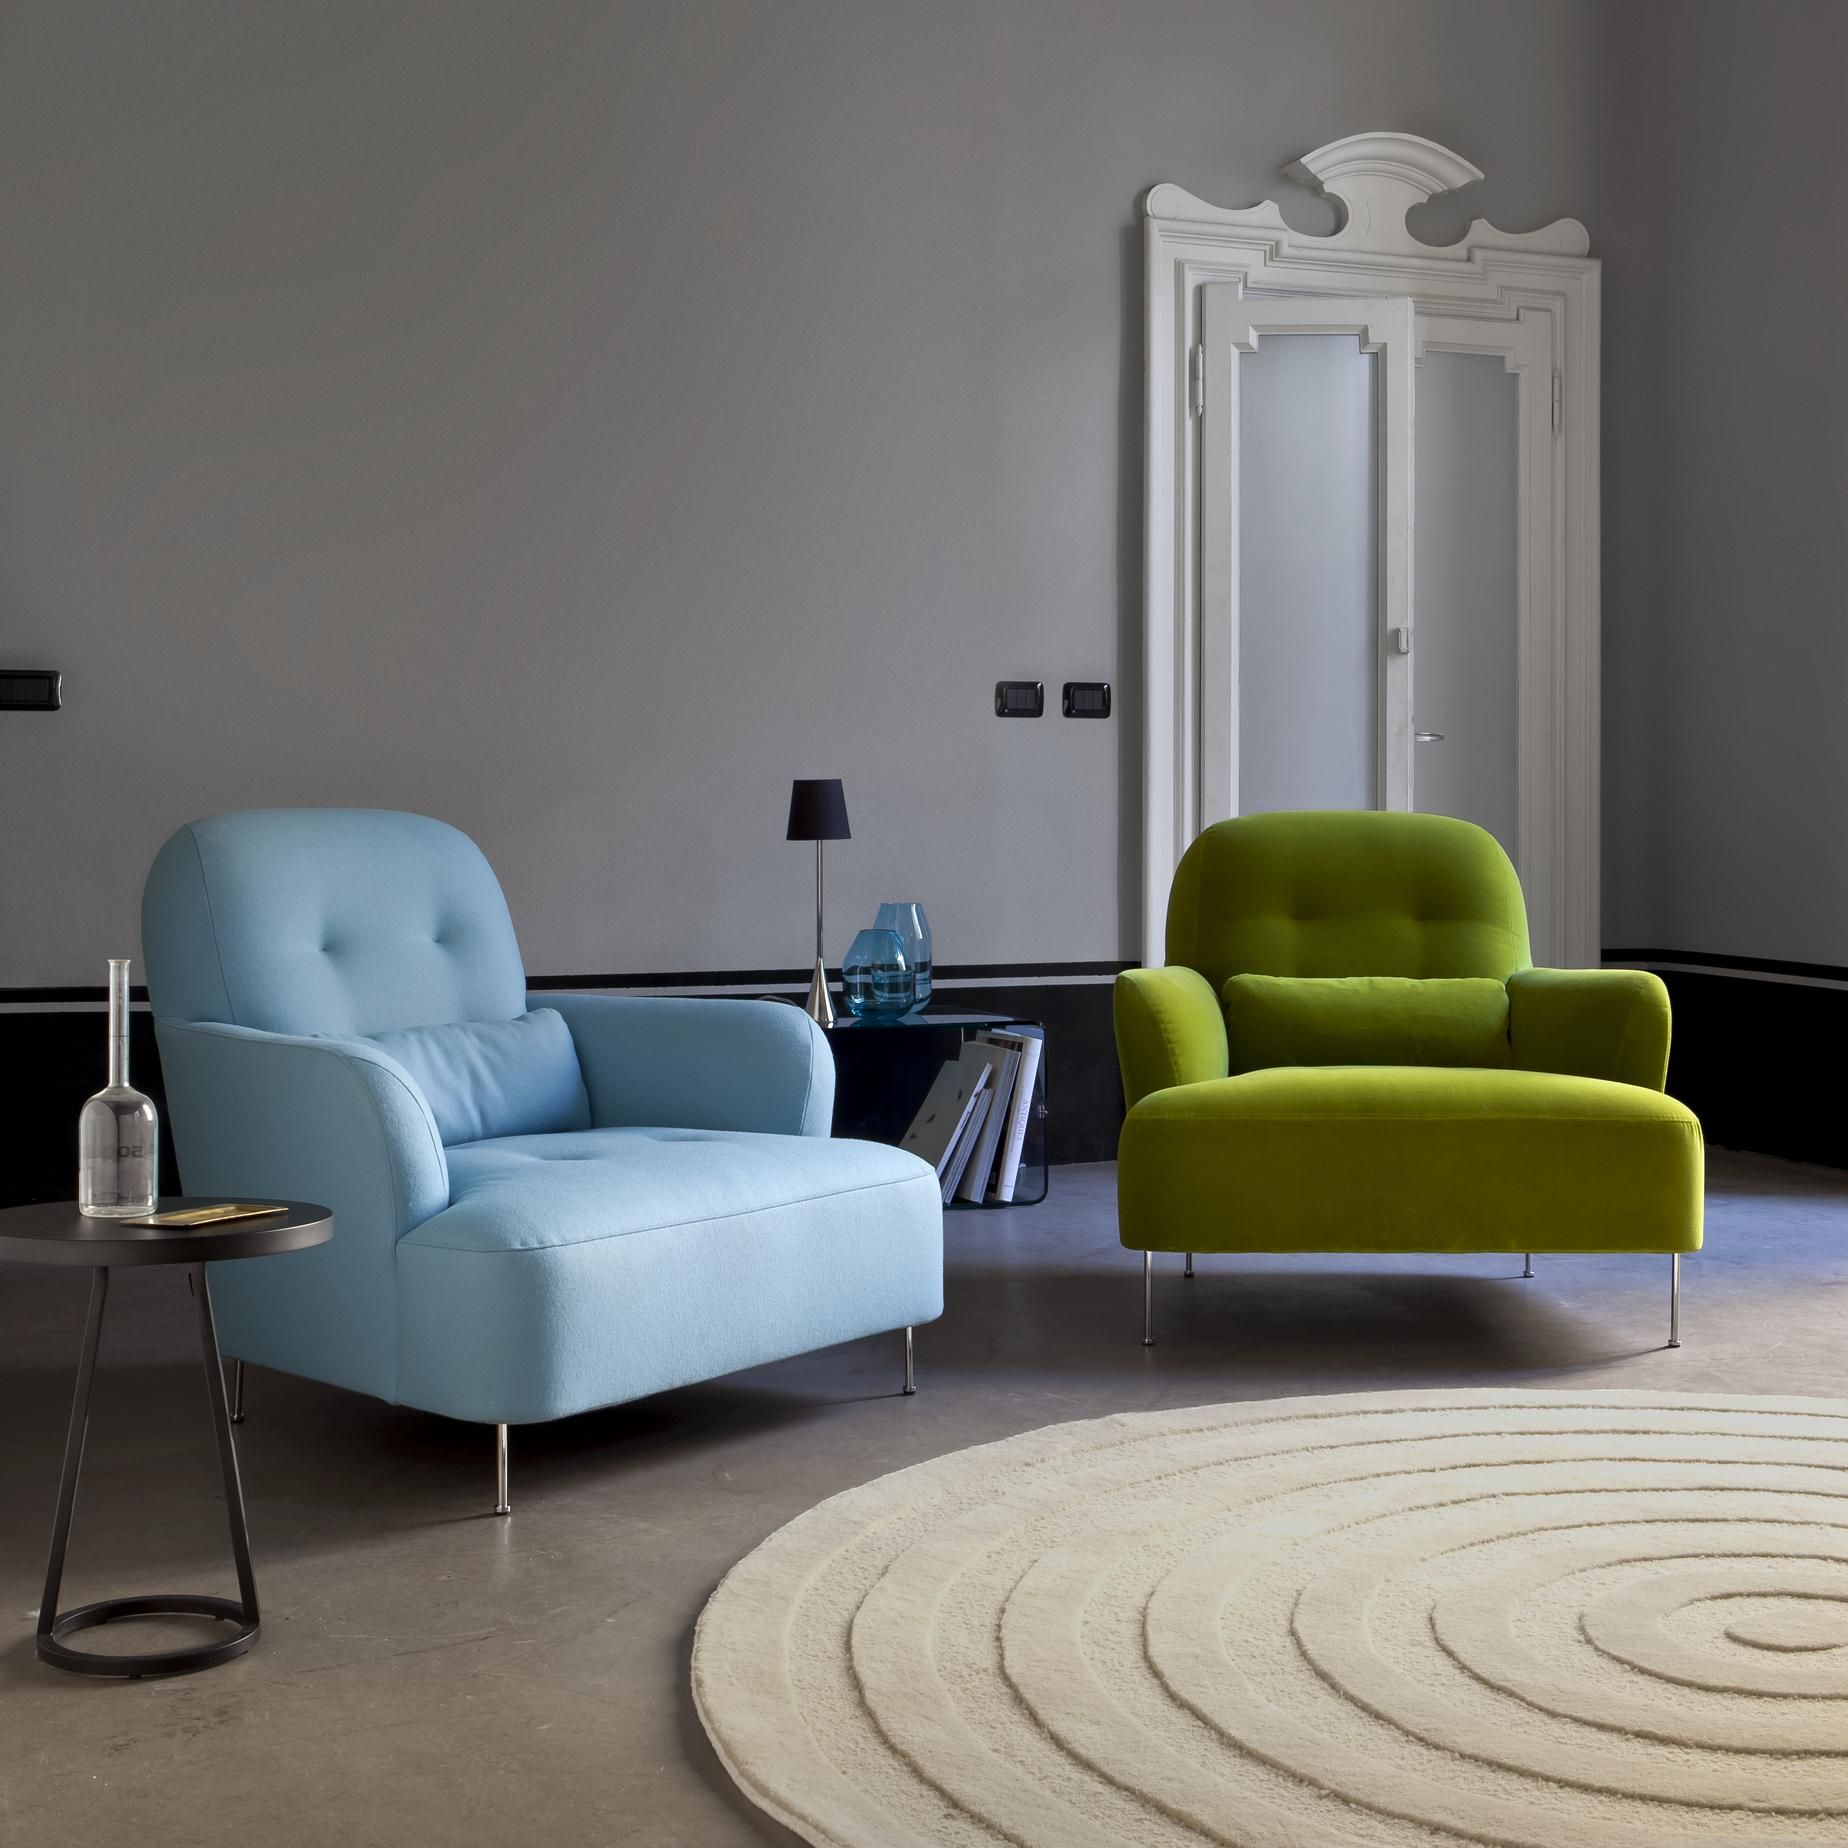 HARRY, Sofas Designer : Eric Jourdan | Ligne Roset